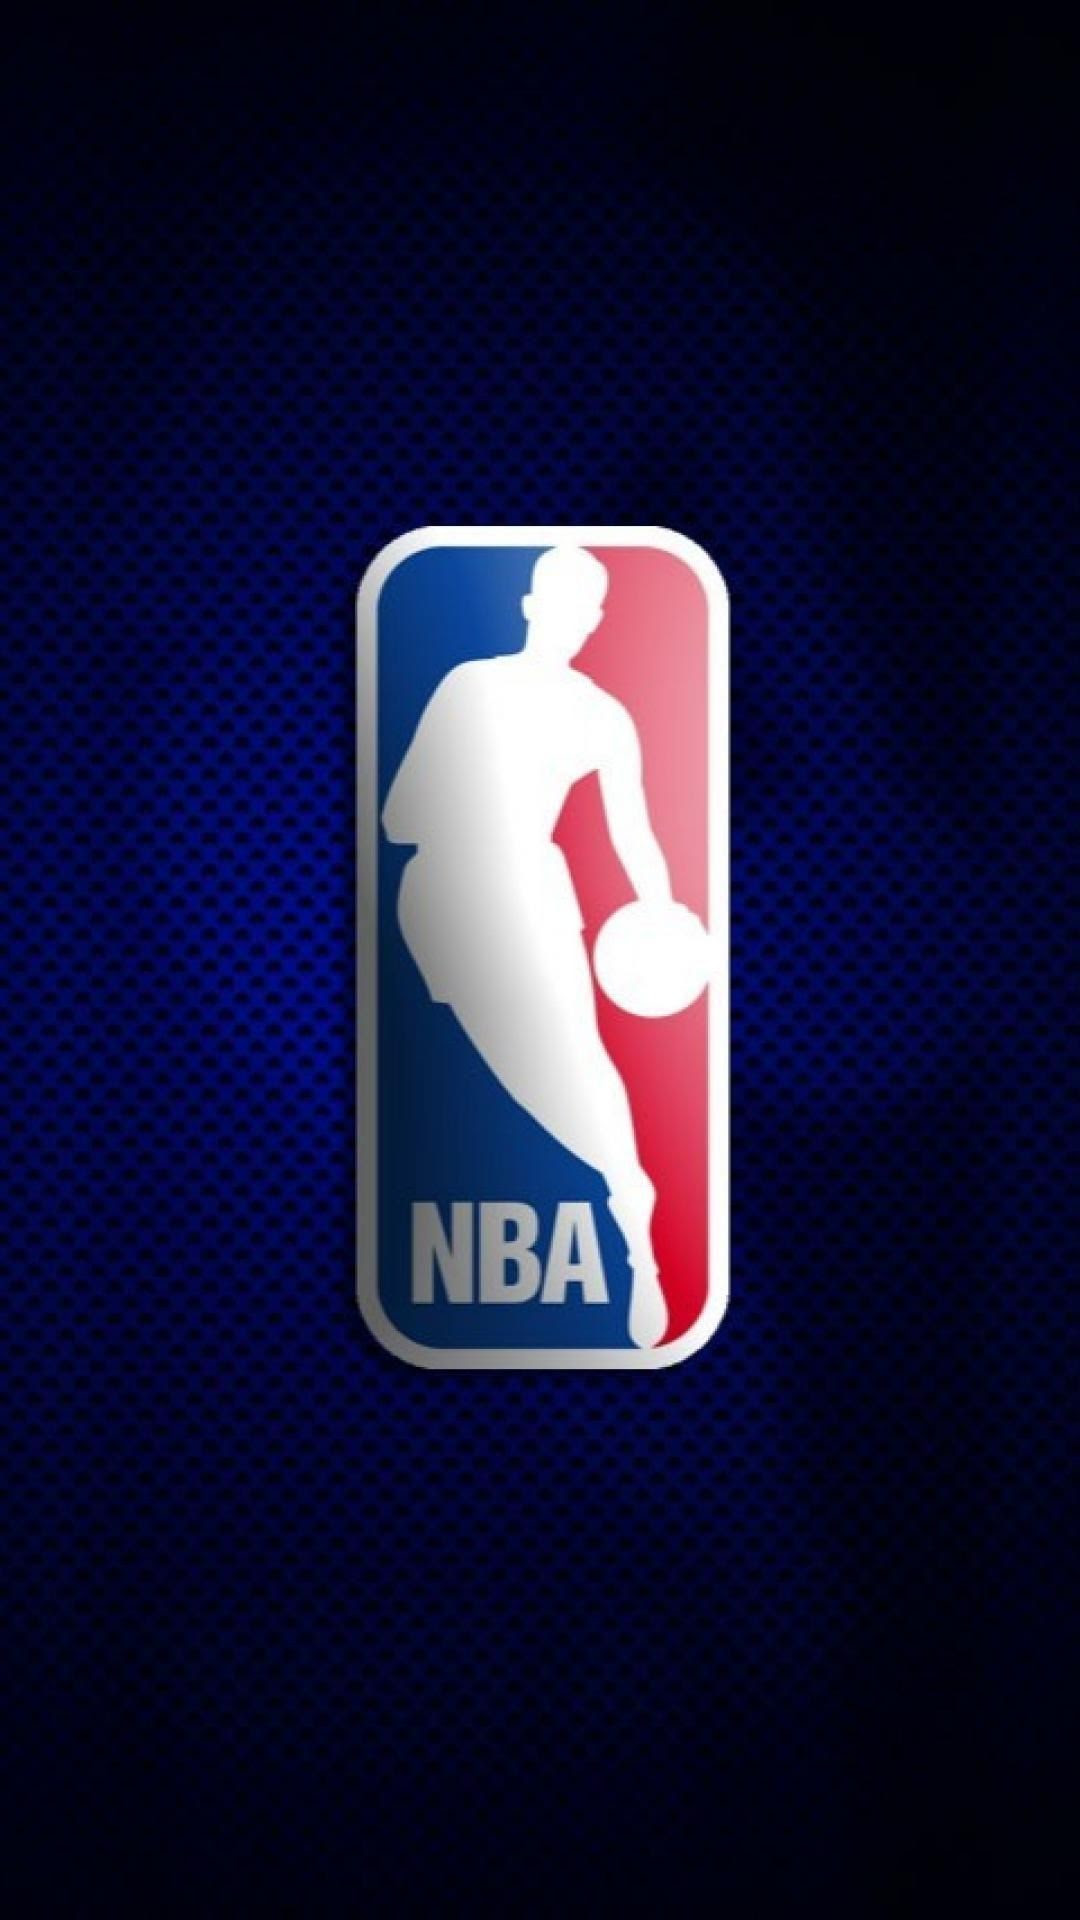 Logo Nba Wallpapers (64+ background pictures)